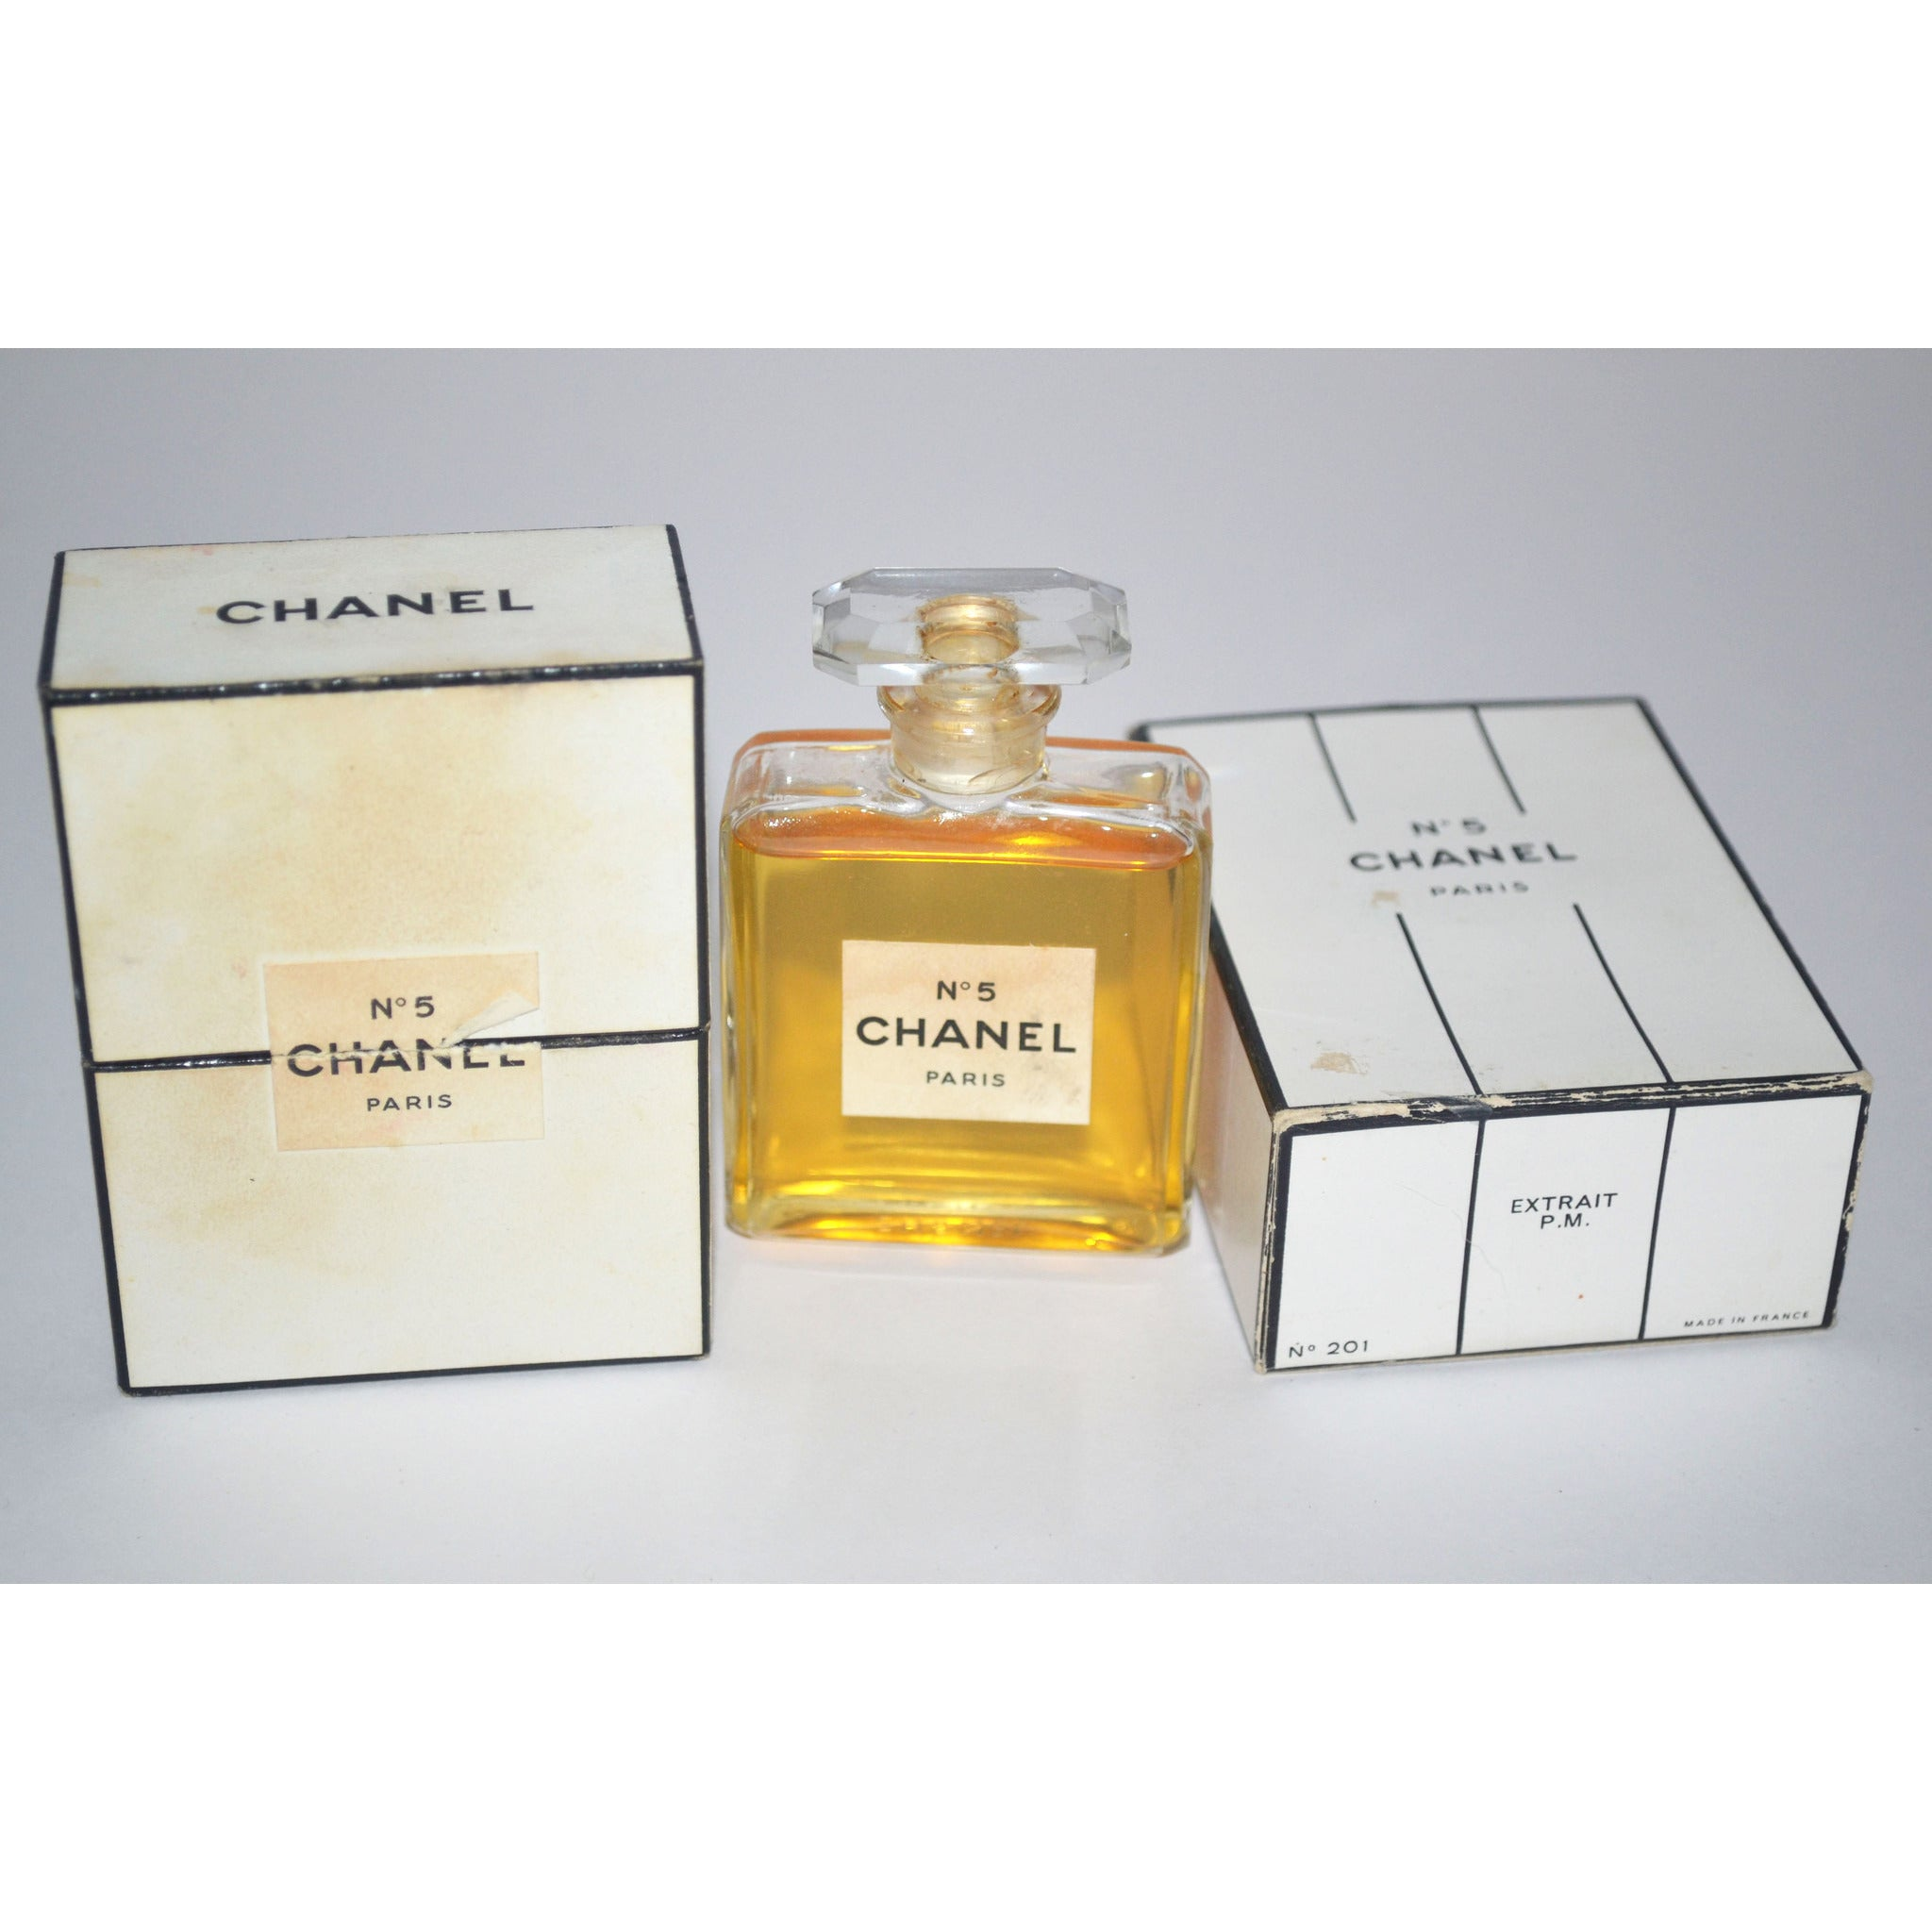 Vintage Chanel No 5 Perfume Extrait